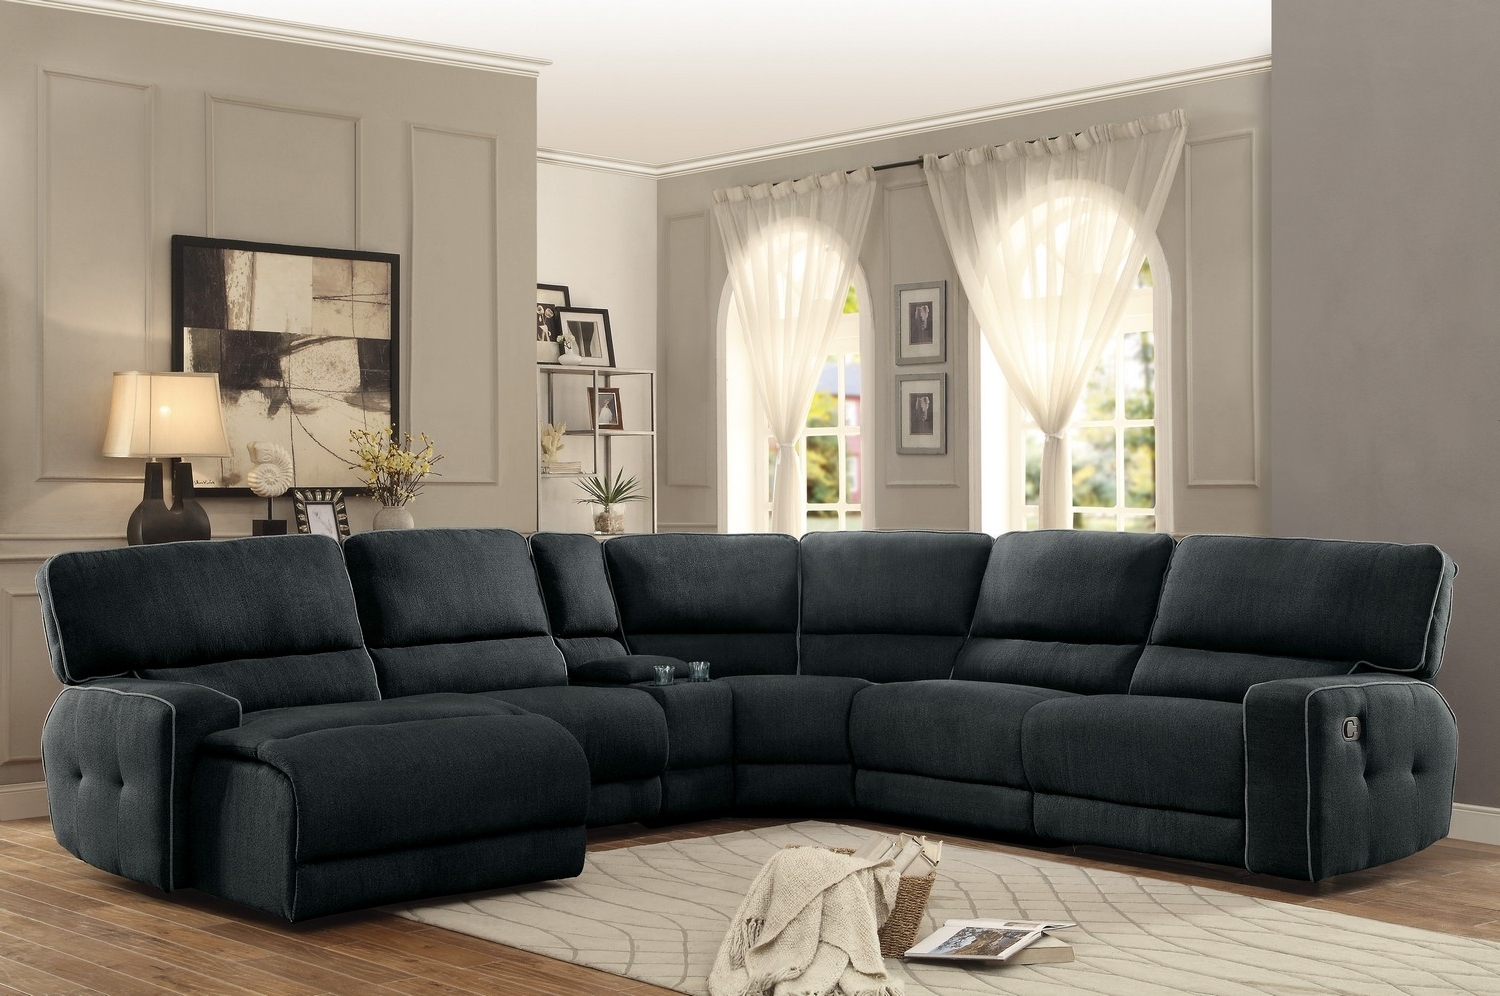 Homelegance Keamey Reclining Sectional Sofa Set A – Polyester With 2017 Couches With Chaise And Recliner (View 8 of 15)